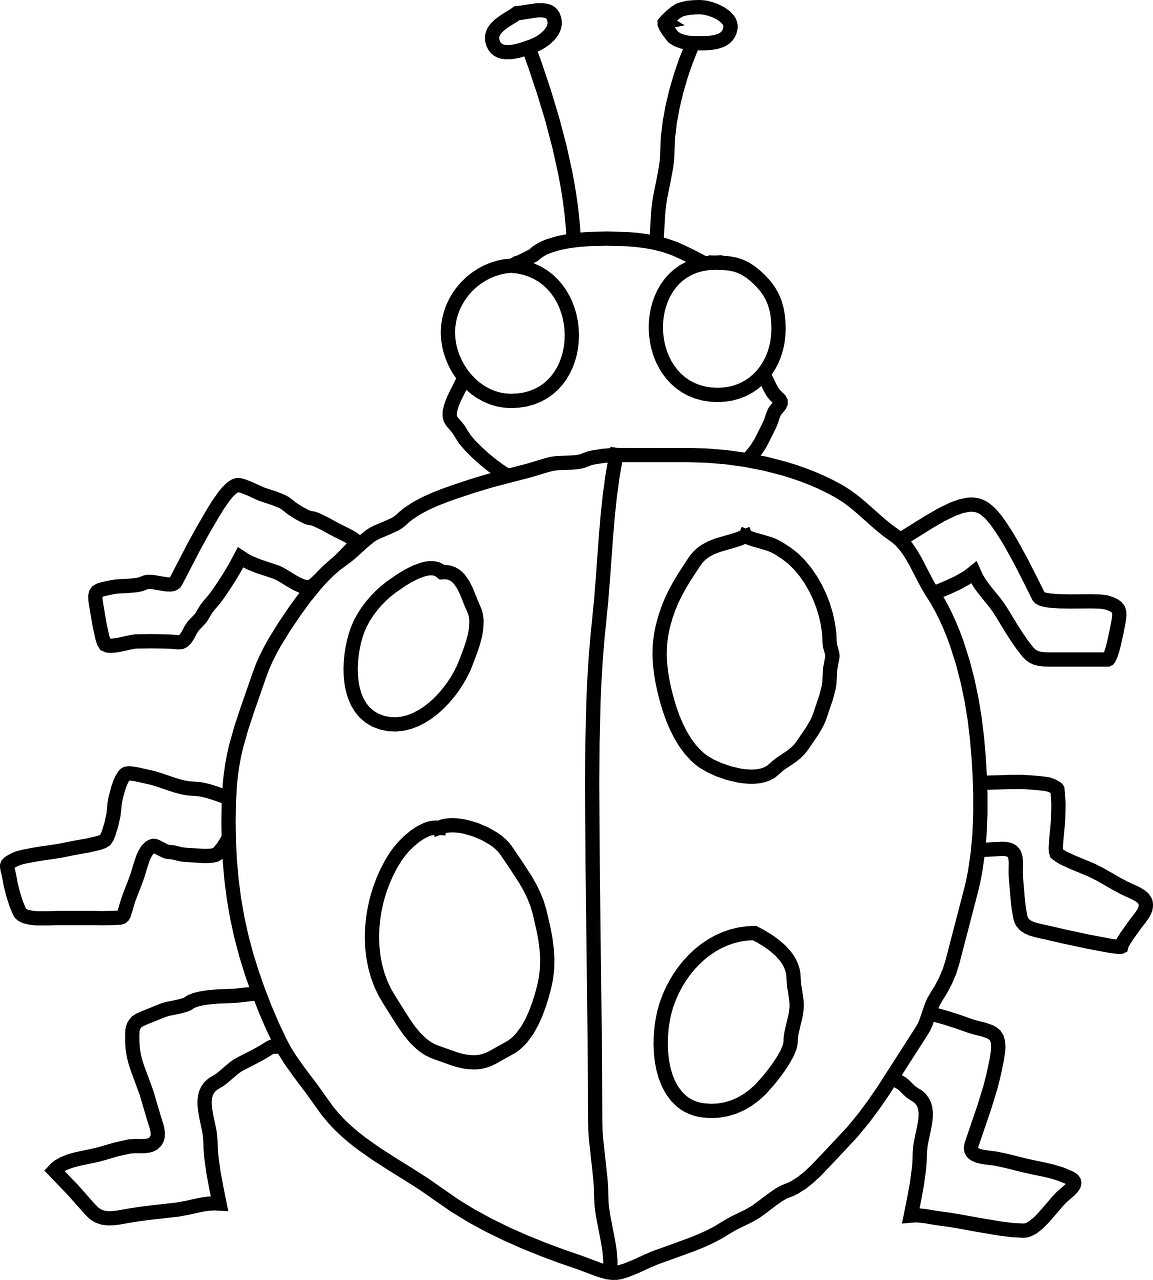 ladybird ladybug black outline png   picpng  picpng